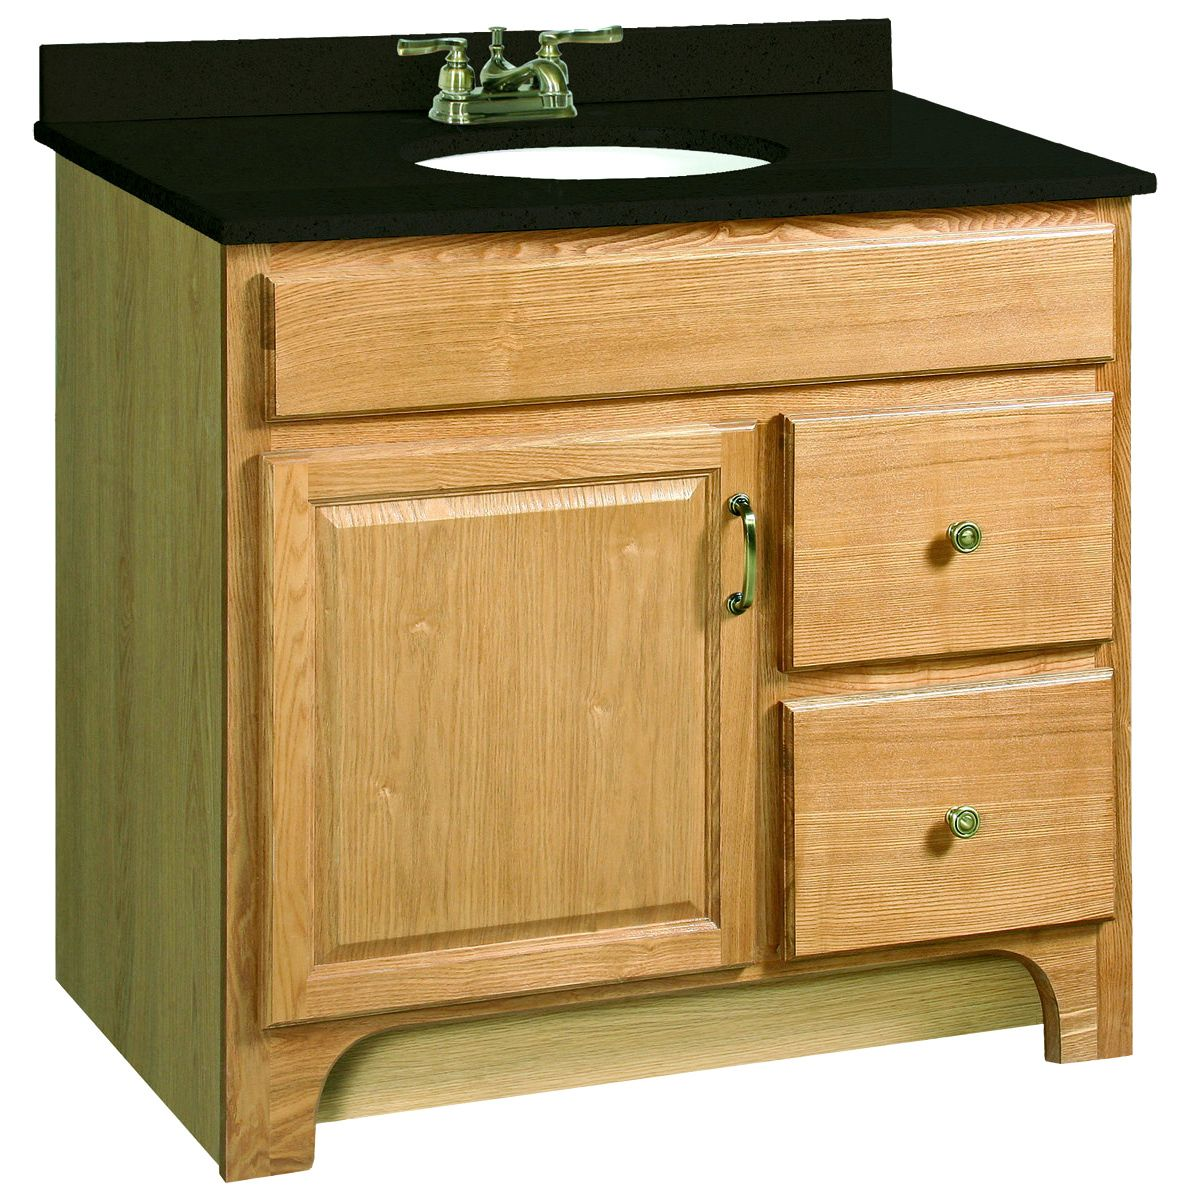 Design House Richland Nutmeg Oak Door Vanity Cabinet Overstock